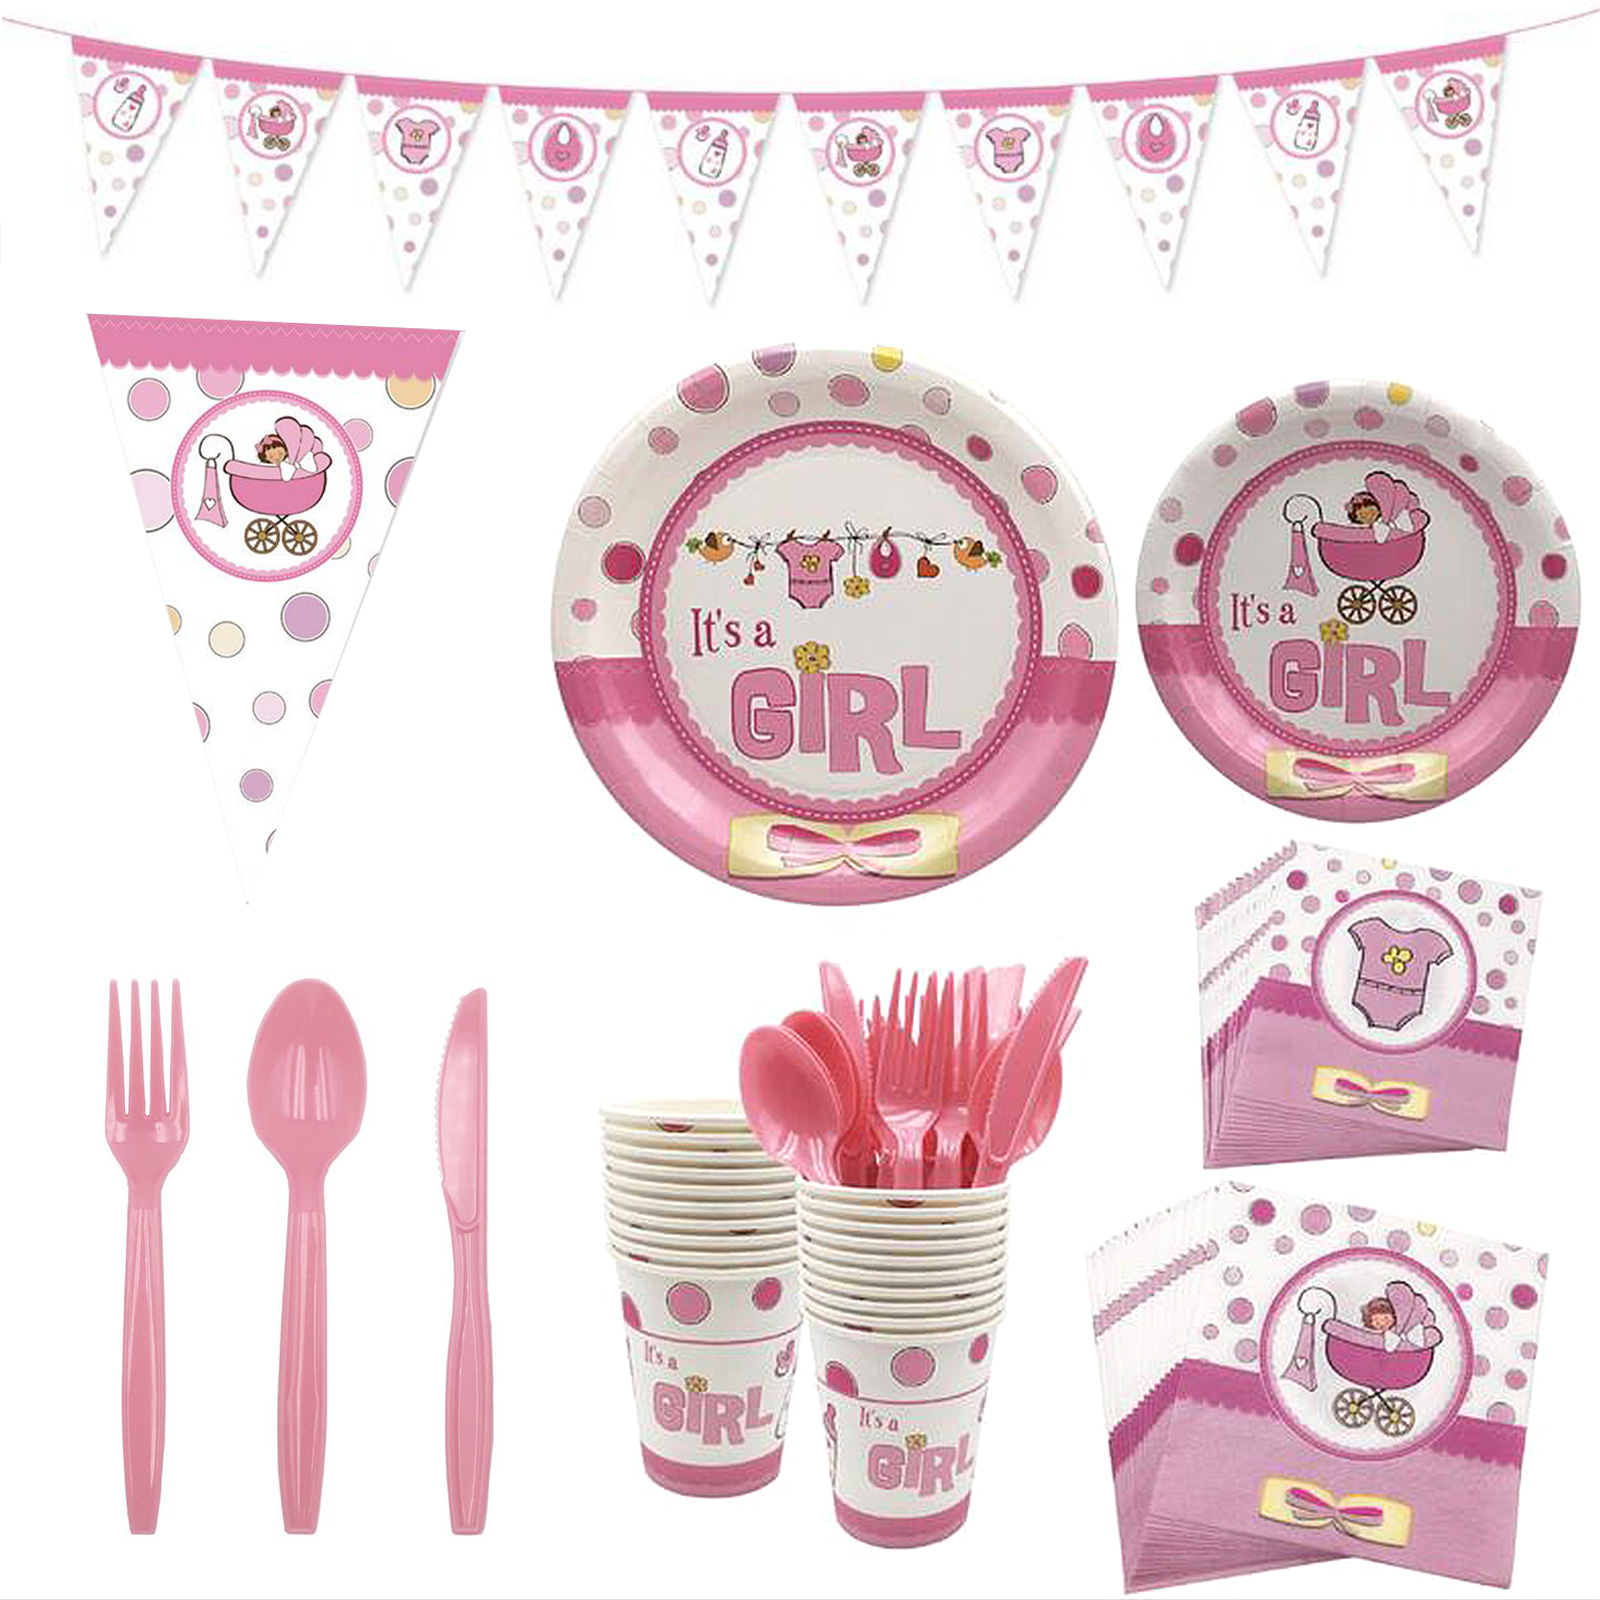 Unisex Disposable Plates Cups Napkins Knifes Fork Tableware Set Boy or Girl Gender Reveal Theme Party Birthday Baby Shower Decor(China)